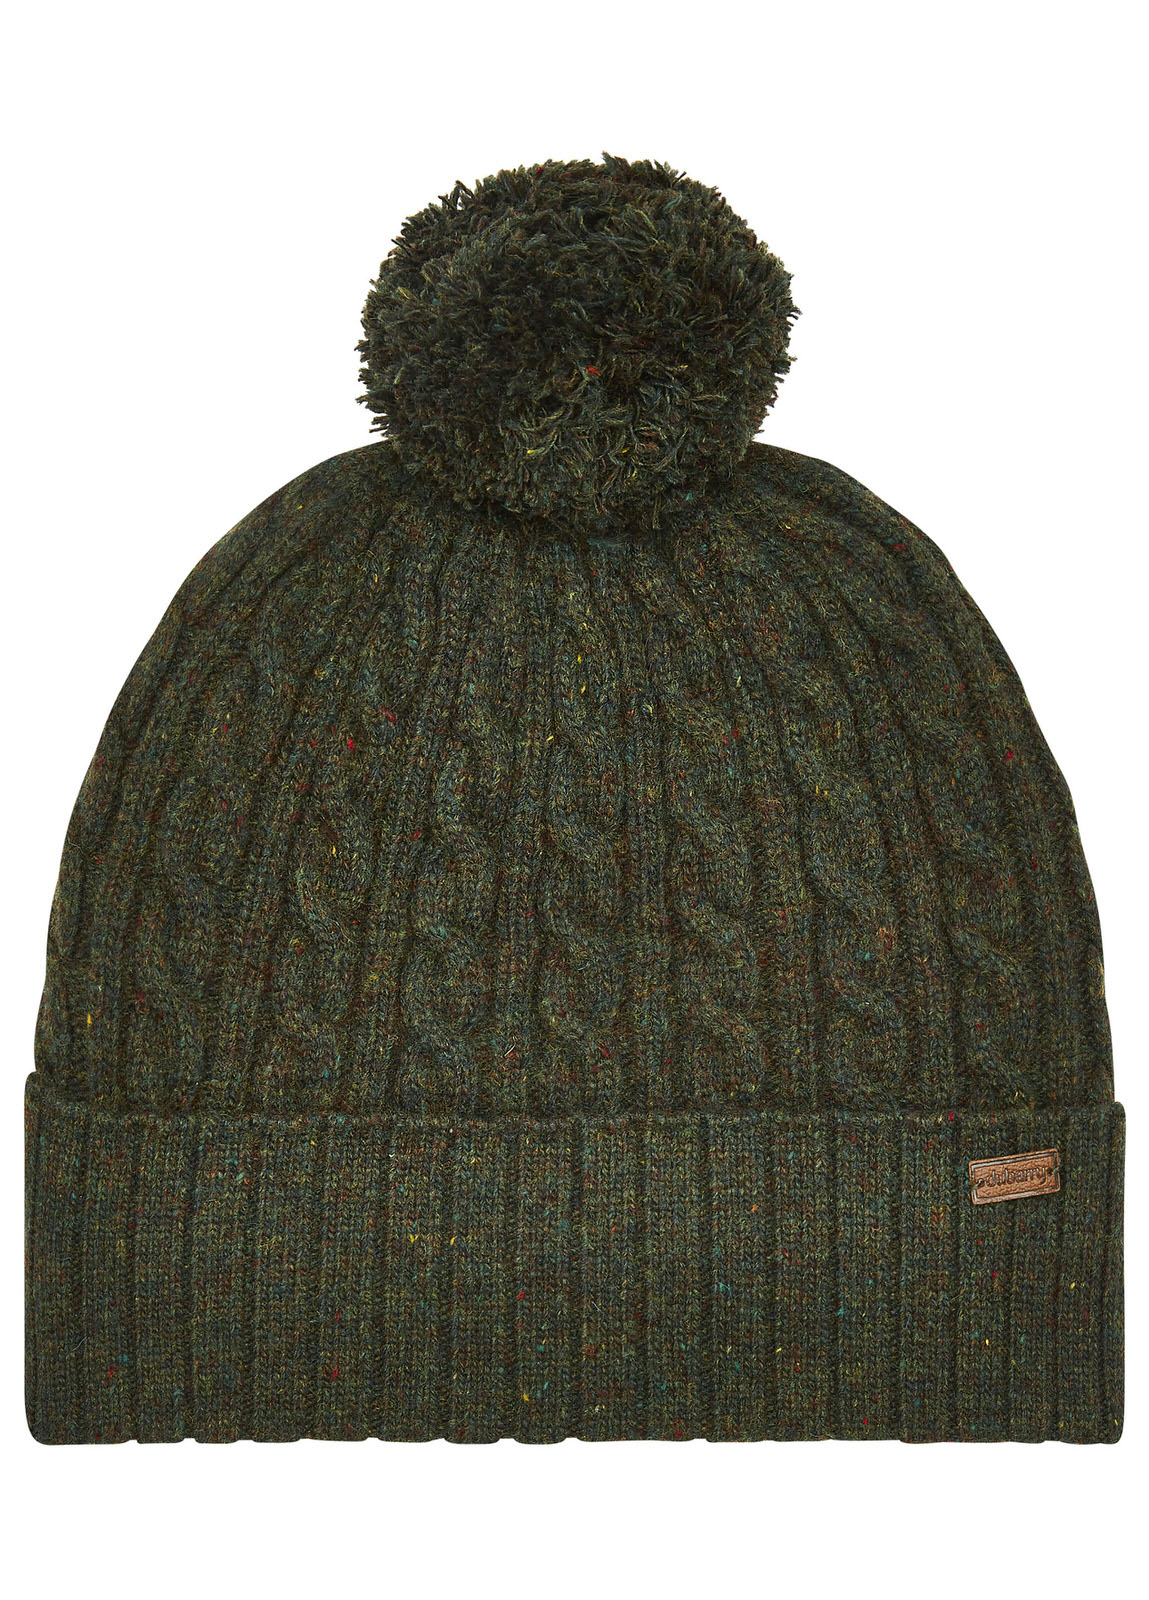 Schull_Knitted_Hat_Olive_Image_1